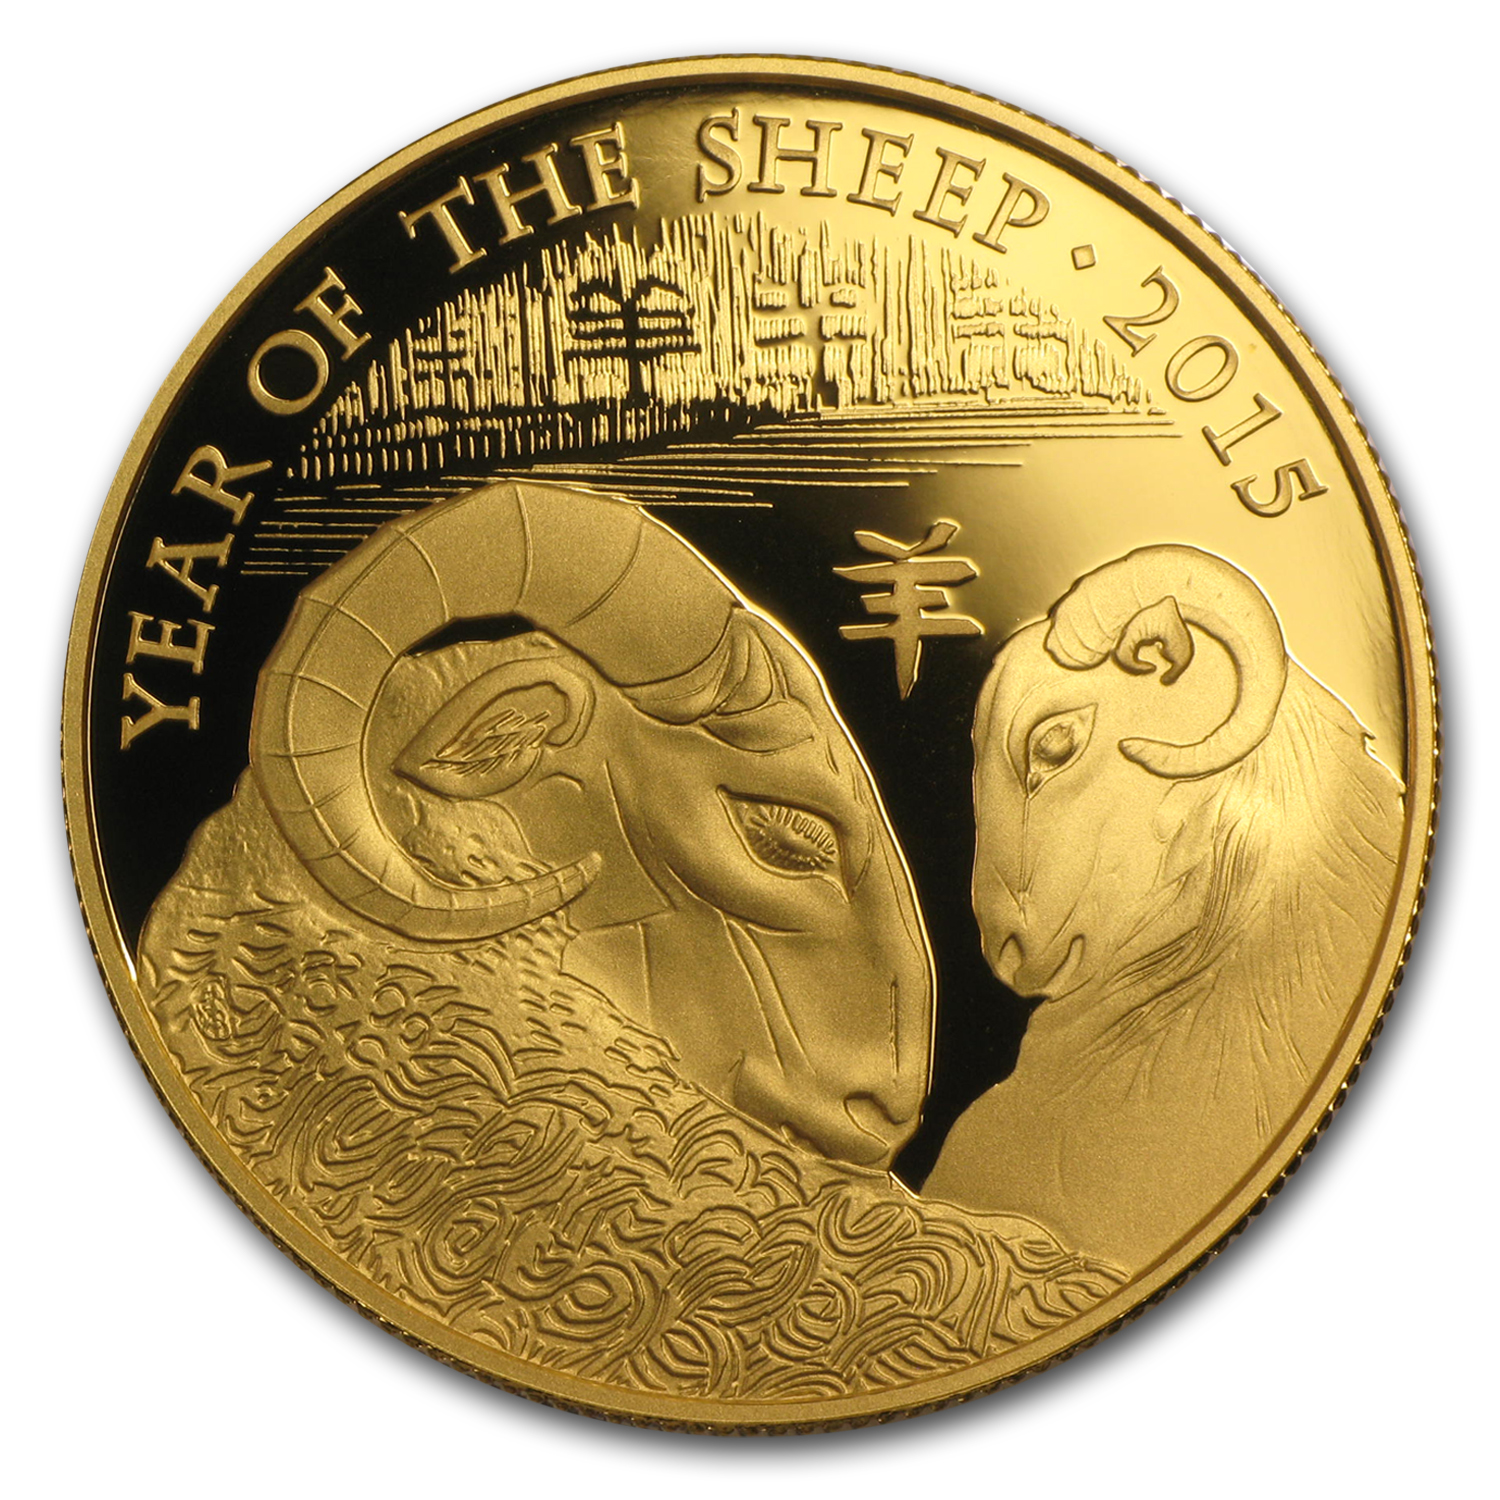 2015 Great Britain 1 oz Gold Year of the Sheep Prf (w/Box & COA)